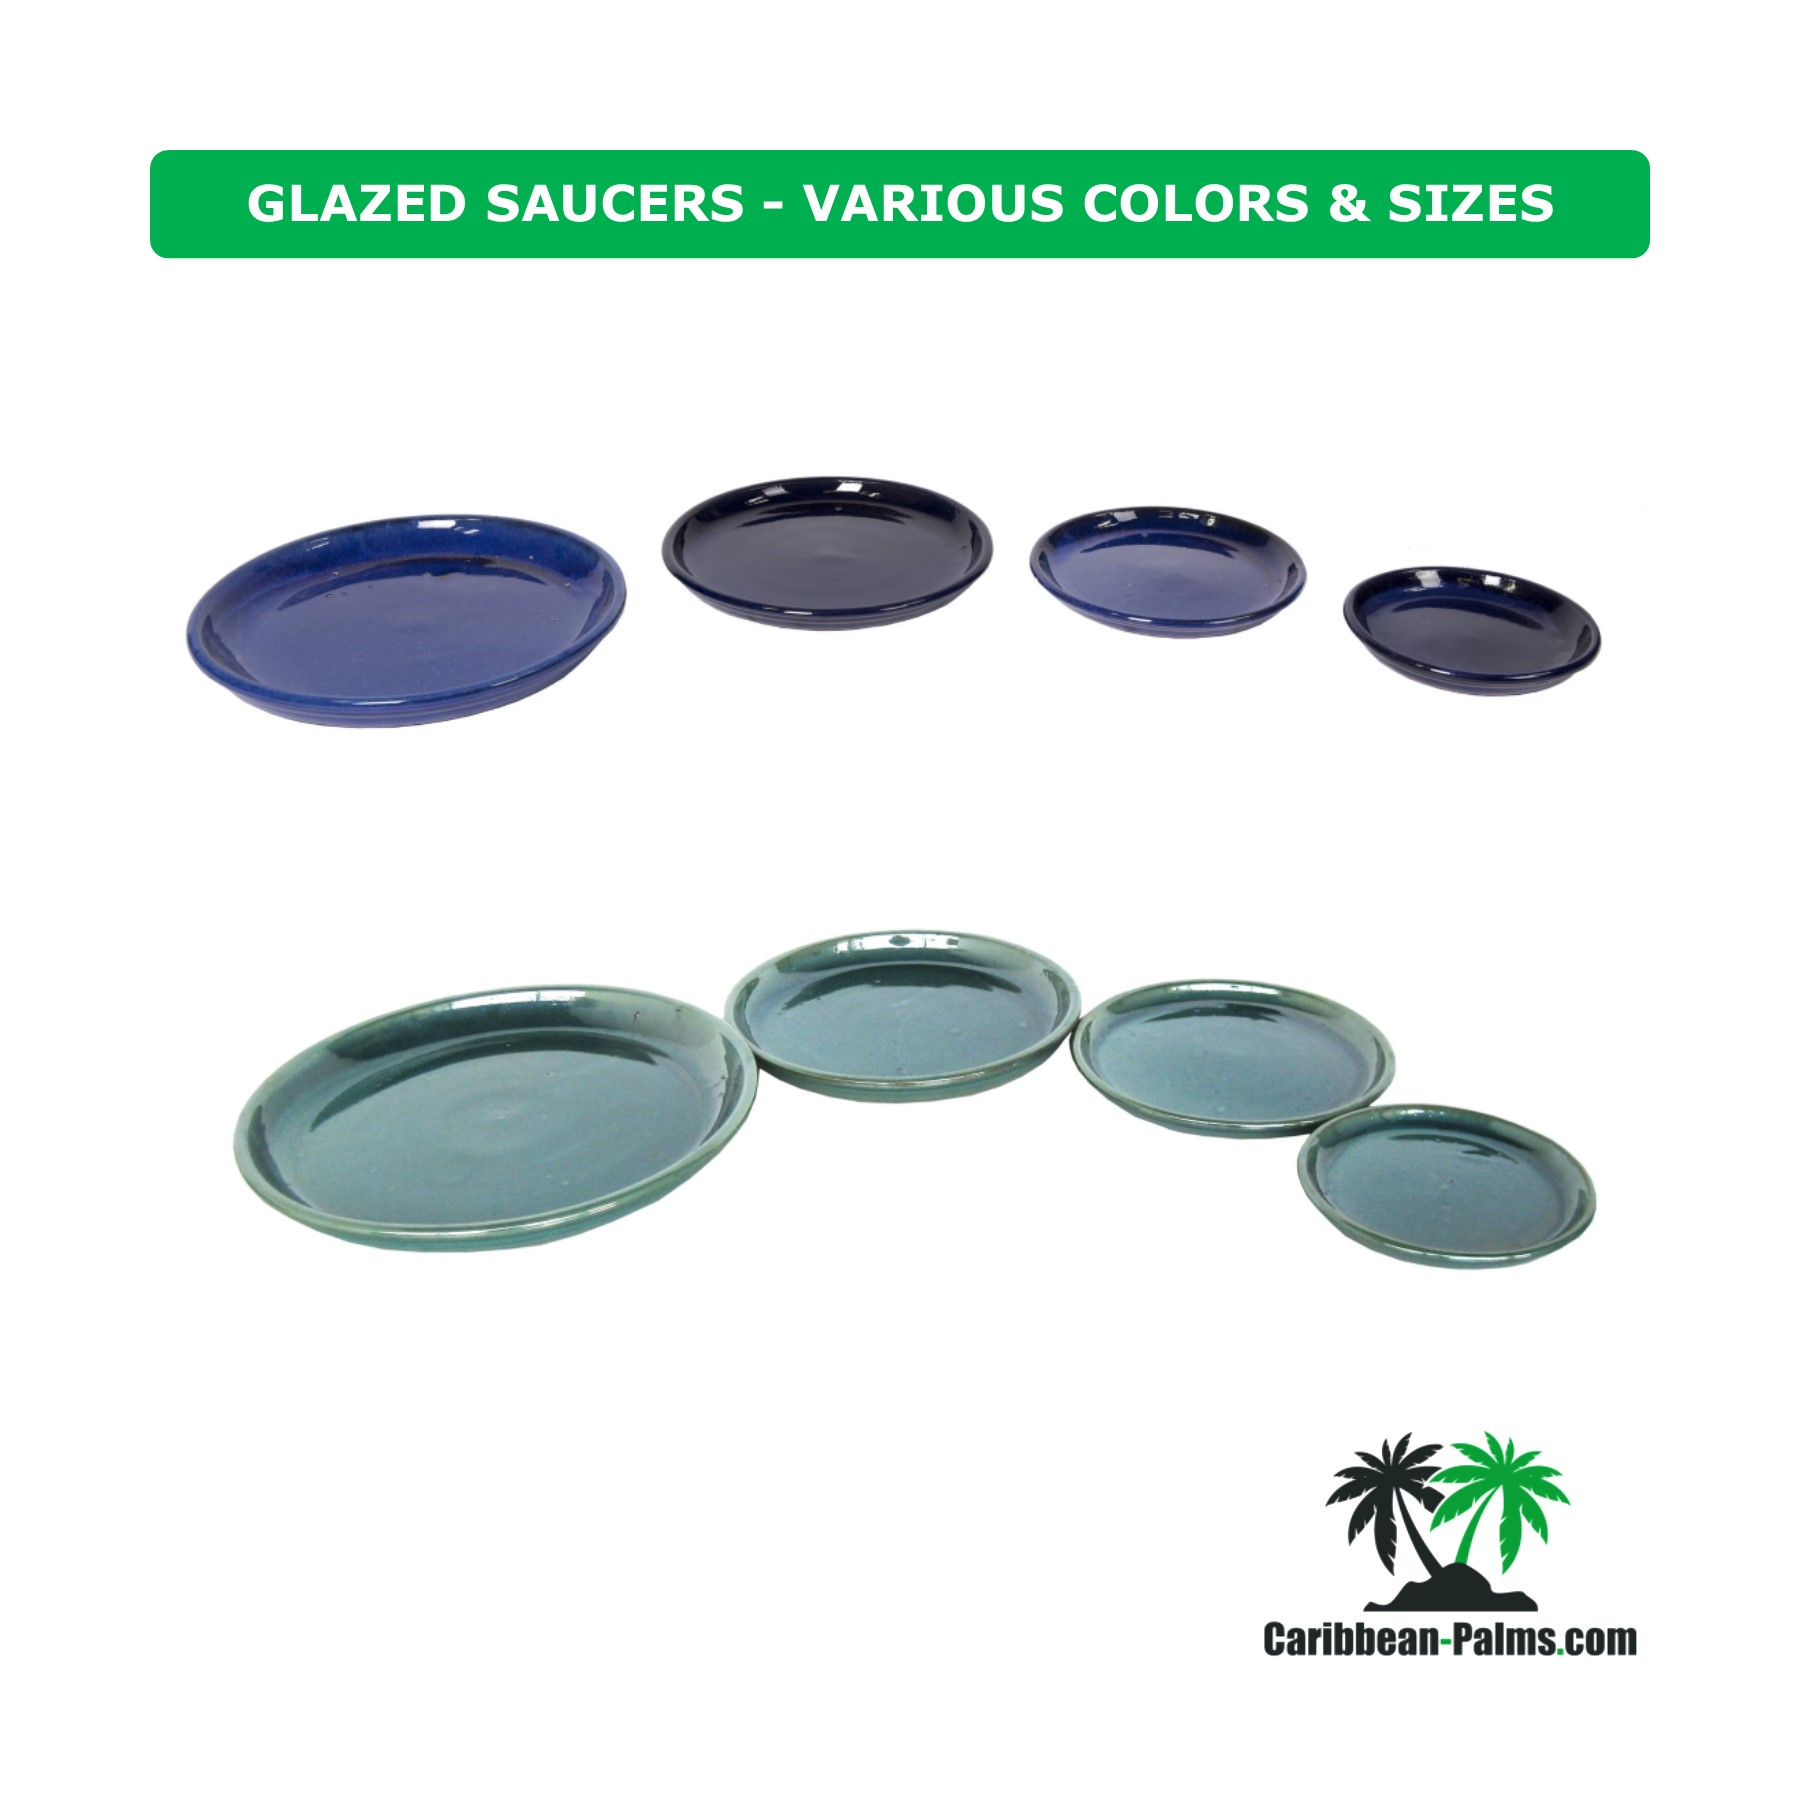 GLAZED SAUCERS VARIOUS COLORS SIZES